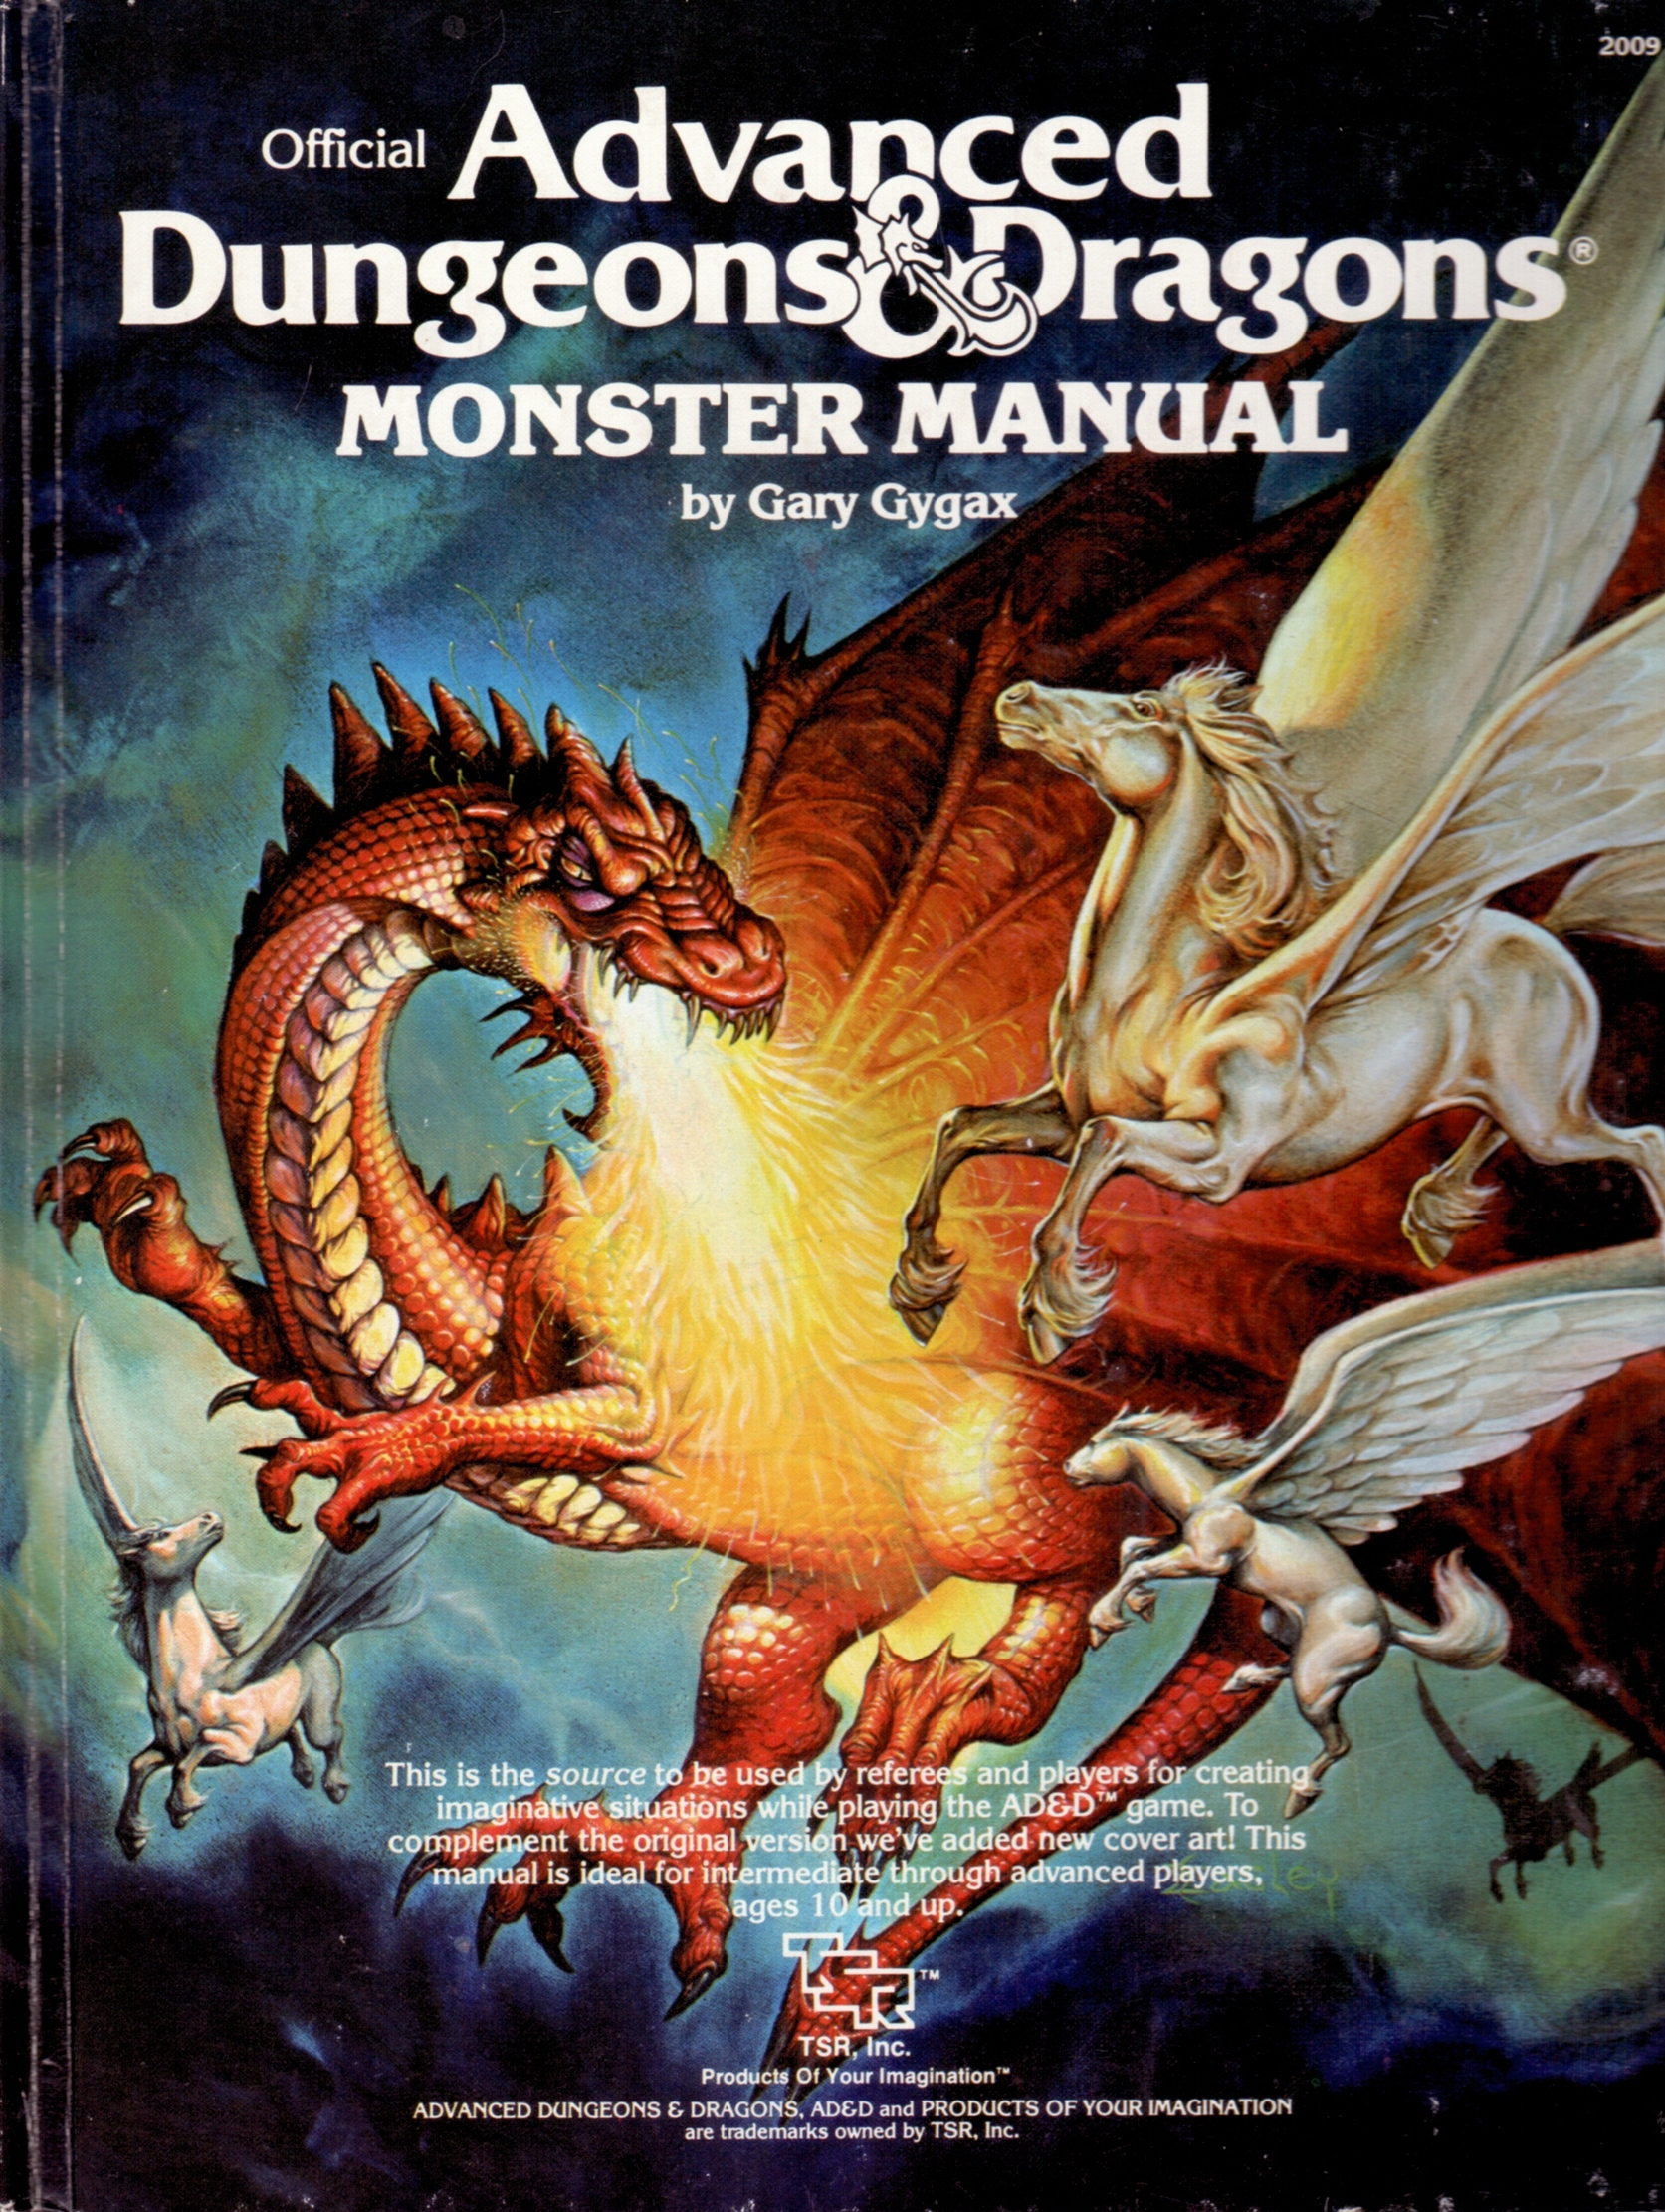 Painted Reproductions Of Original Advanced Dungeons Manual Guide